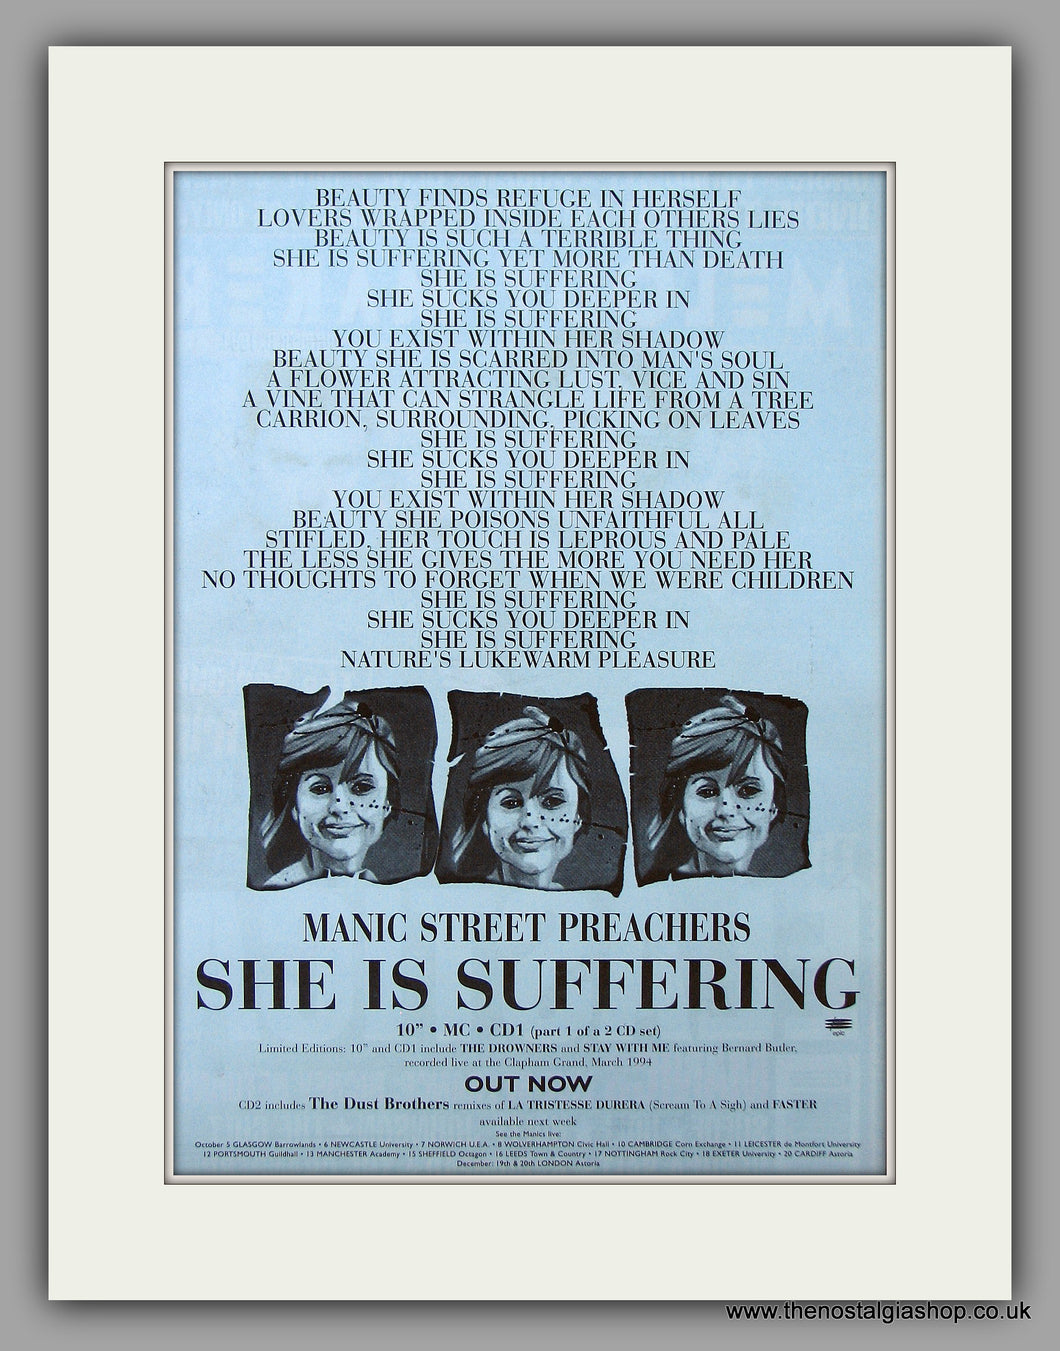 Manic Street Preachers - She Is Suffering. Original Vintage Advert 1994 (ref AD10904)